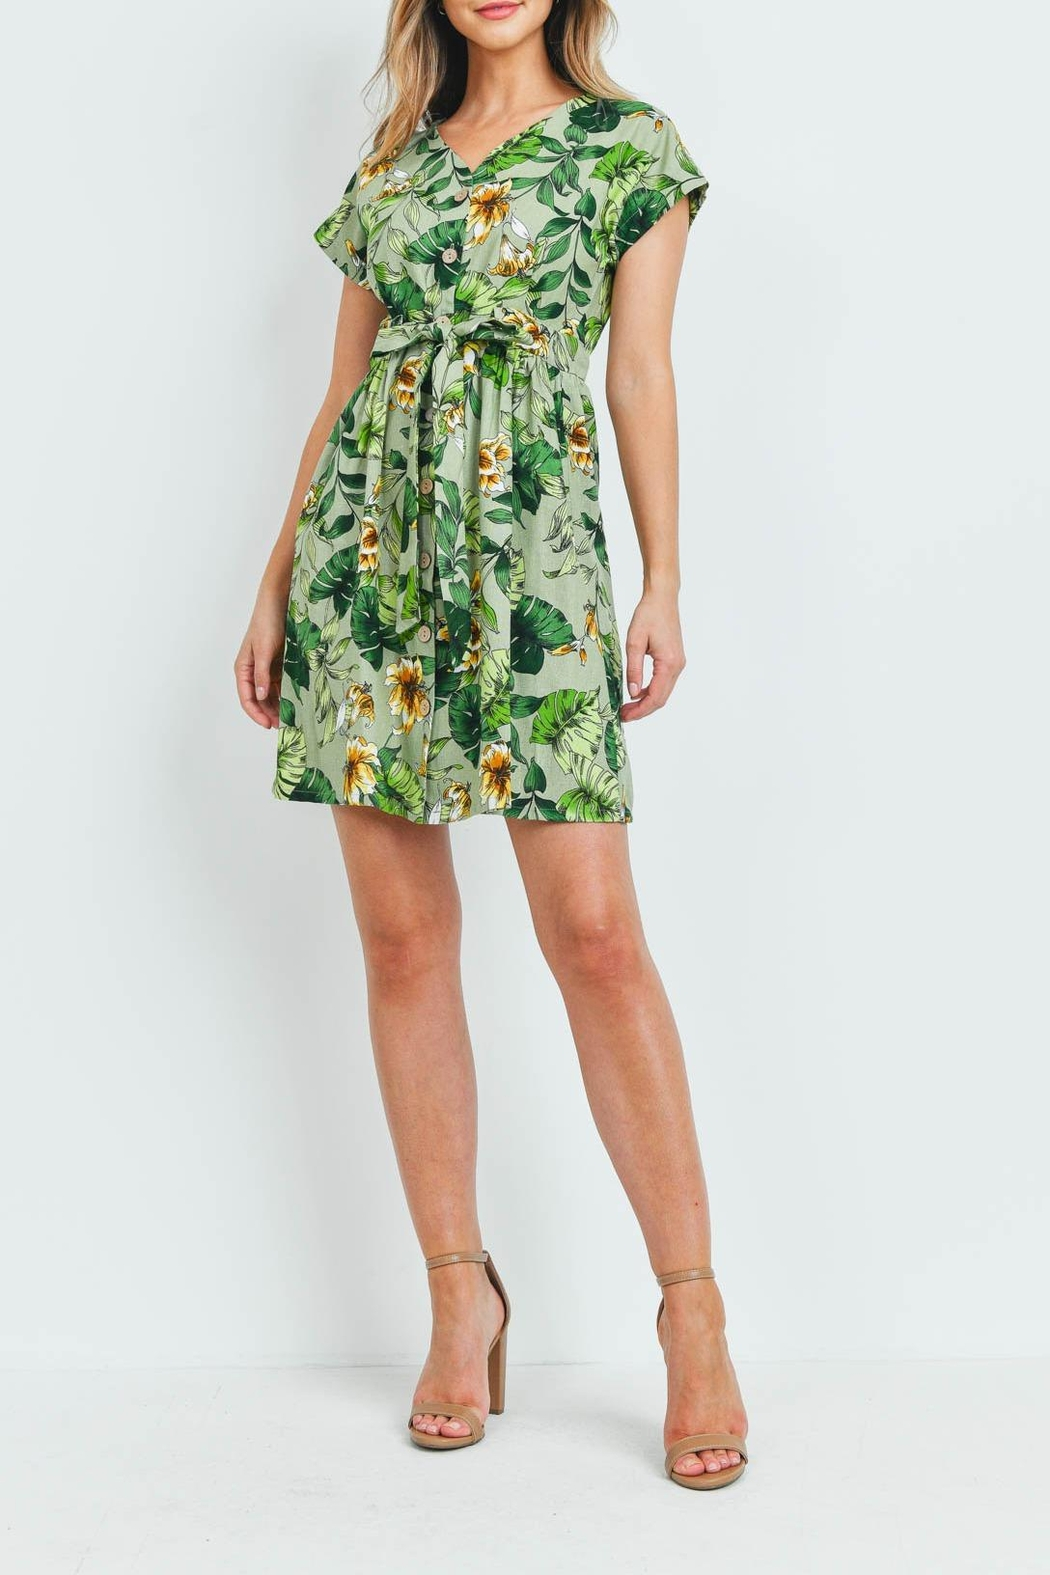 Riah Fashion Green Floral Dress - Side Cropped Image